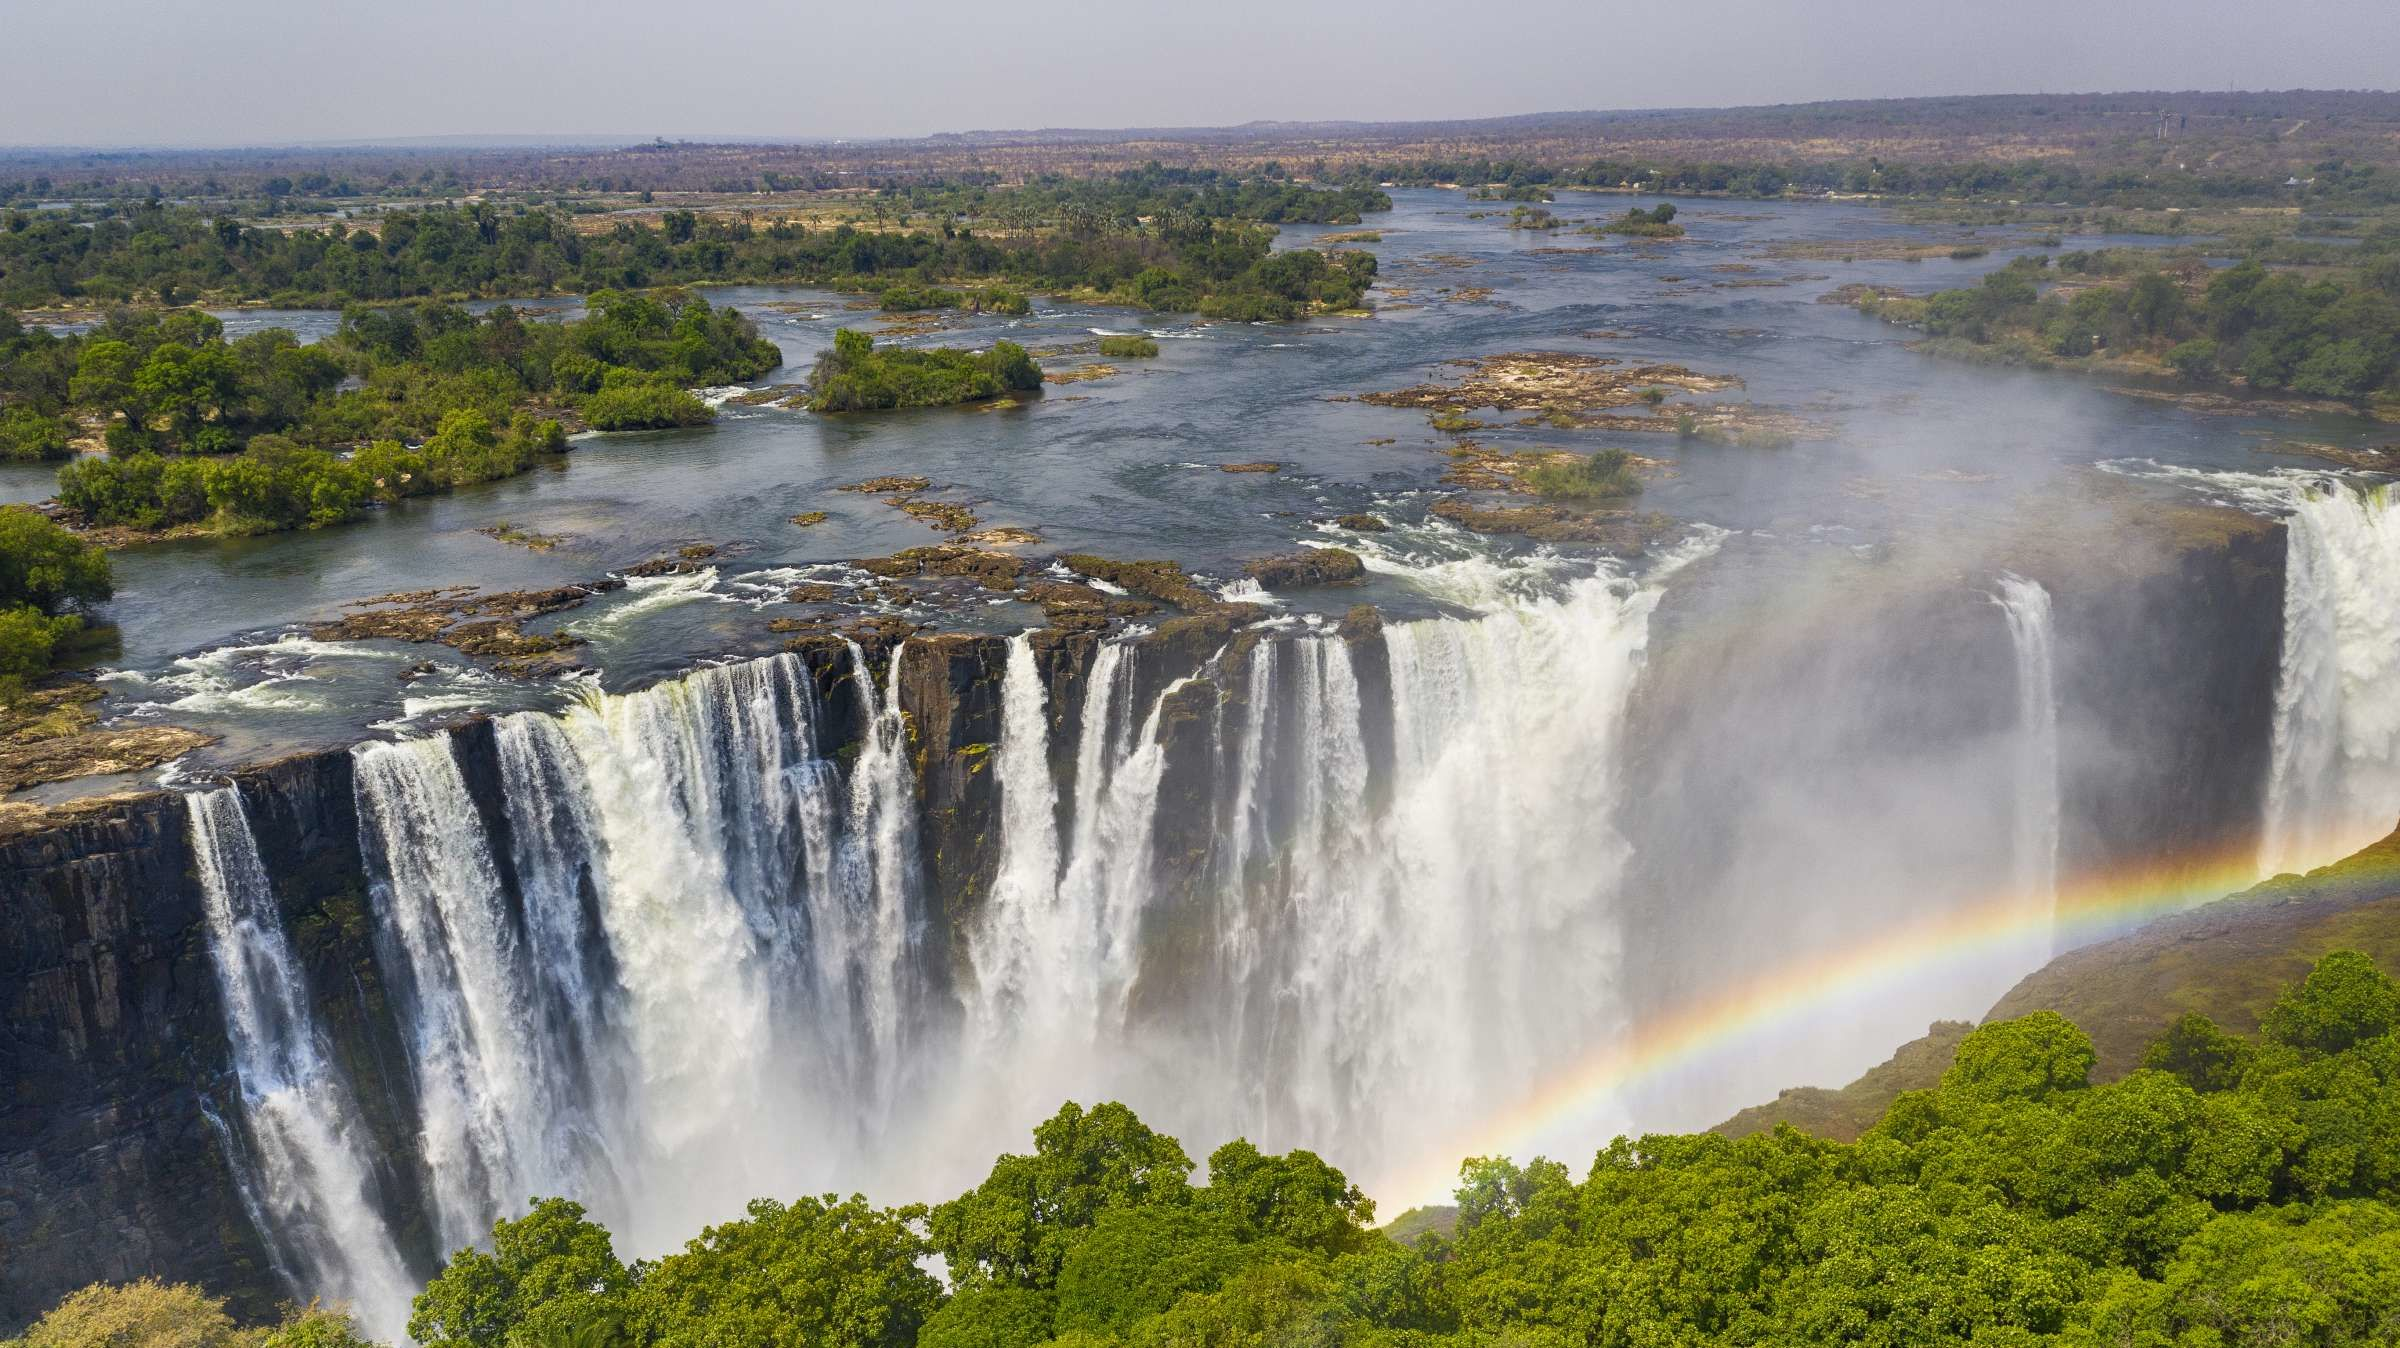 Can You Name the 7 Natural Wonders?